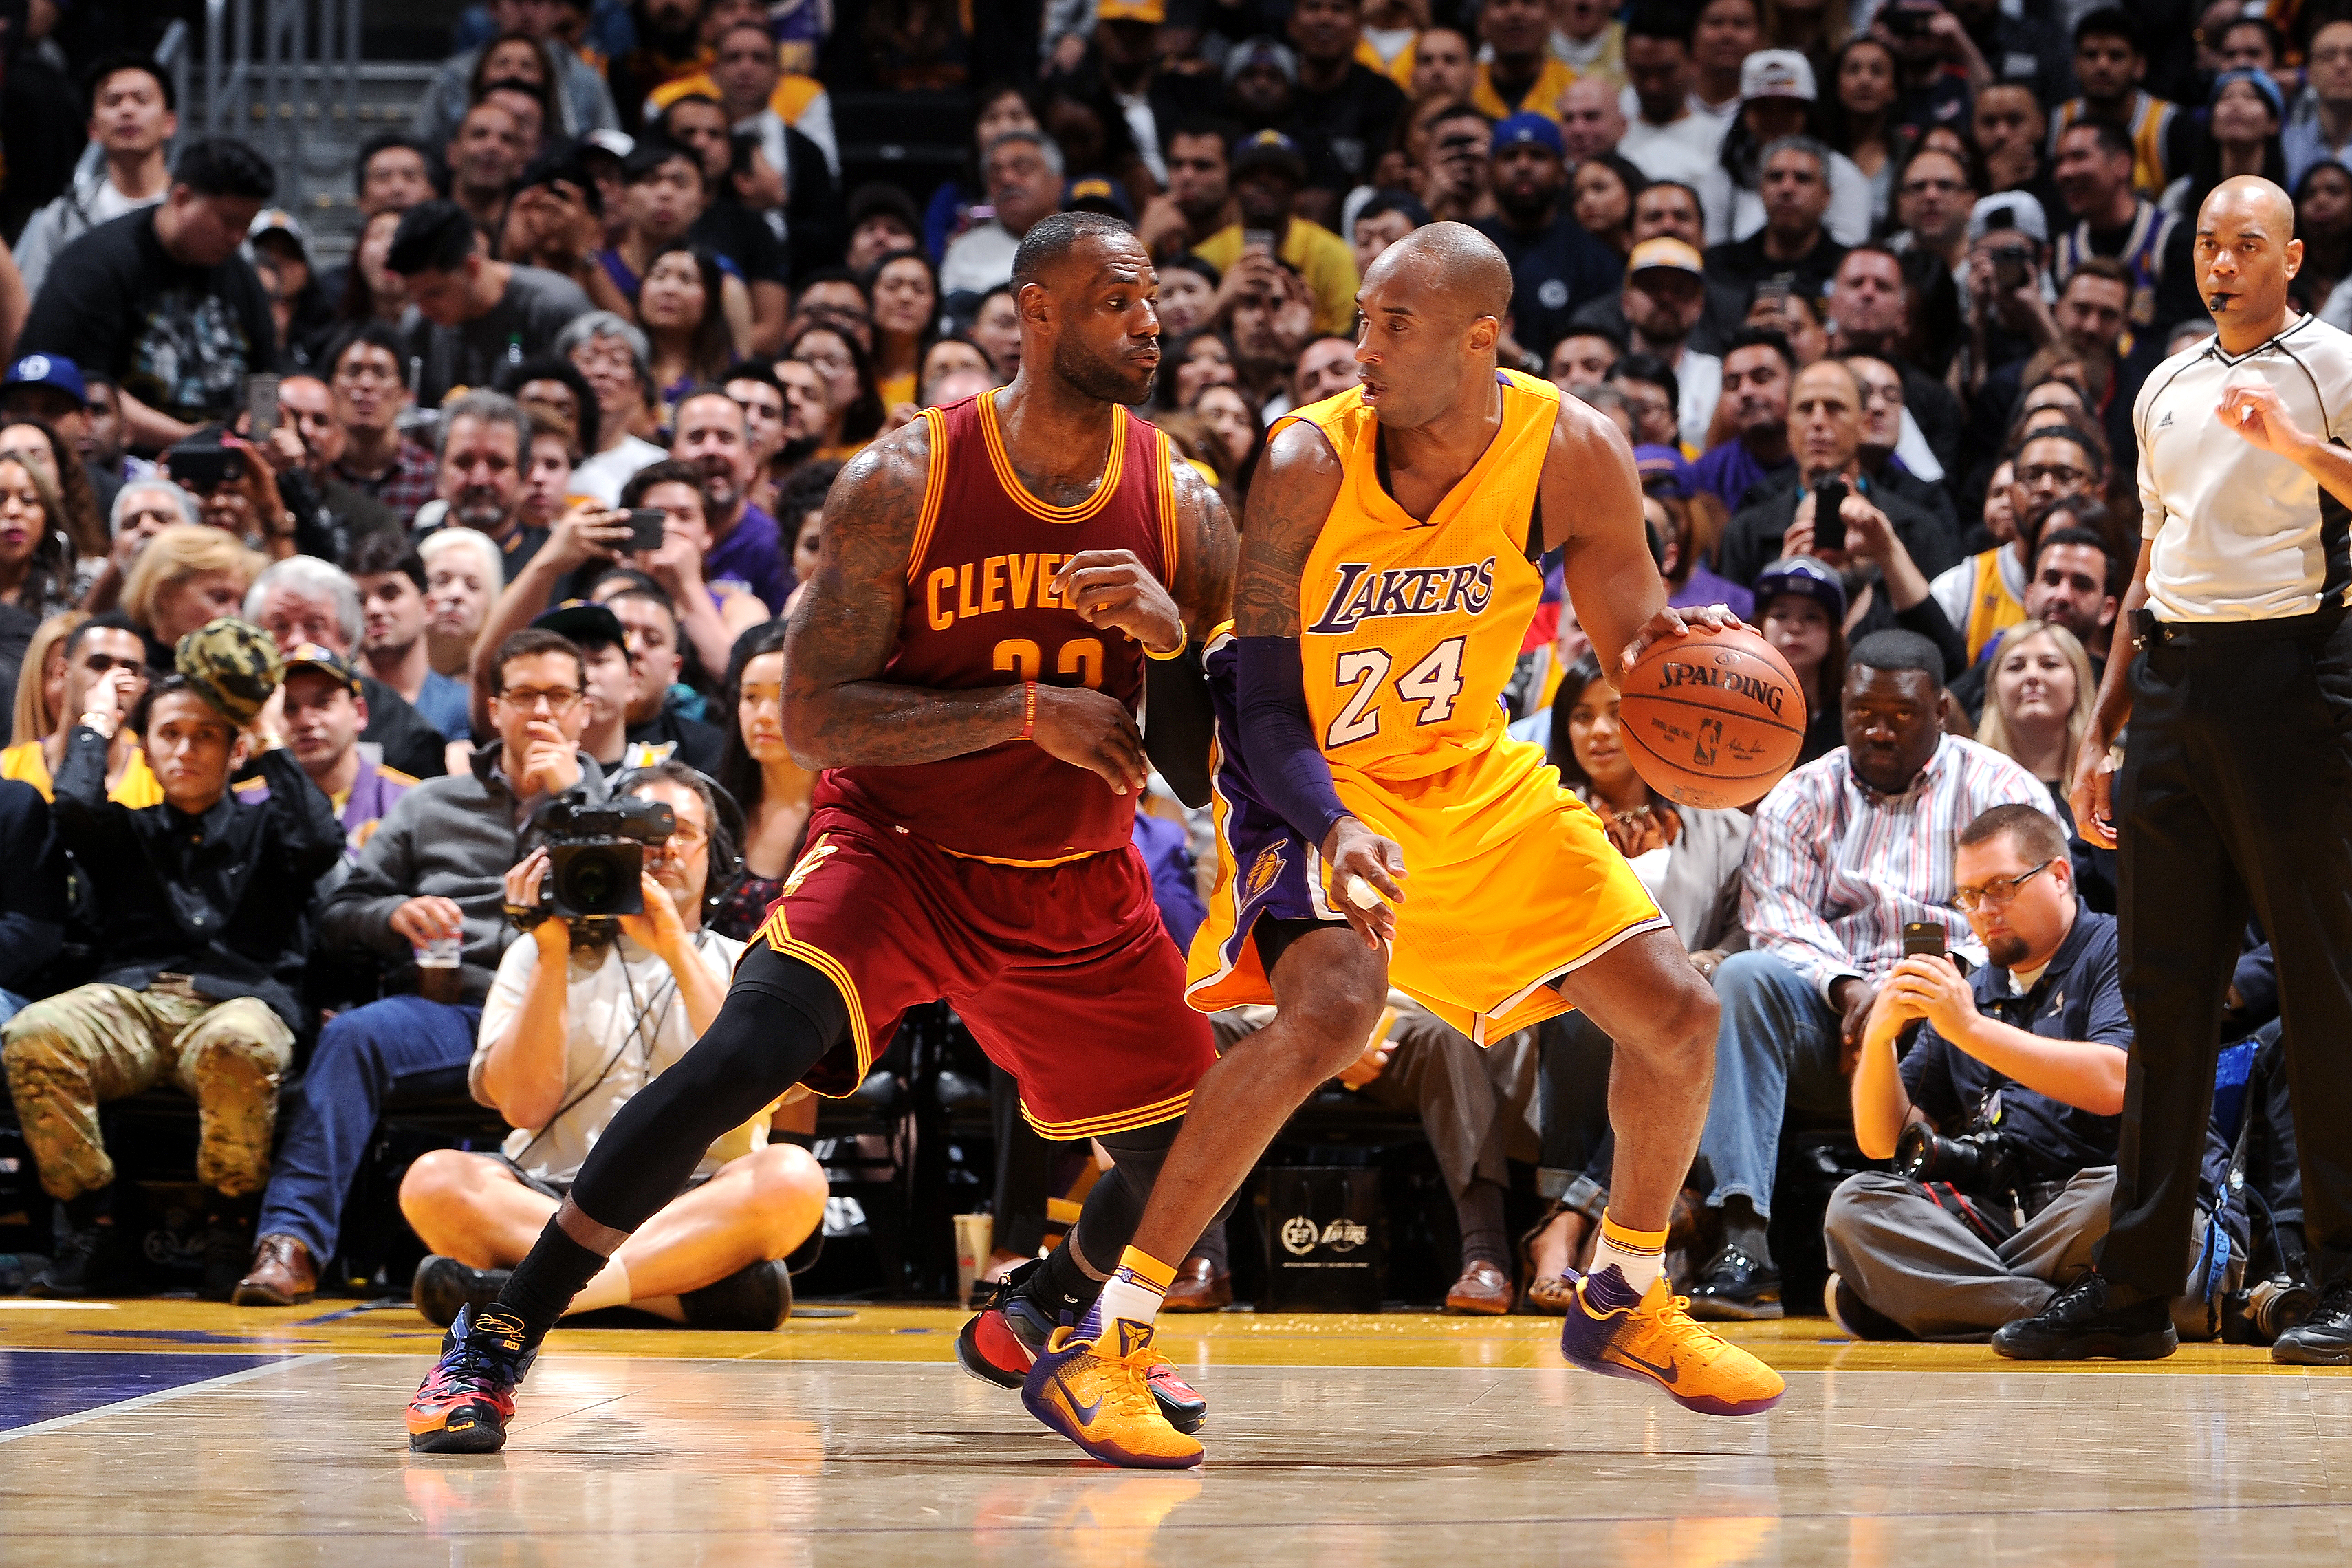 LOS ANGELES, CA - MARCH 10: Kobe Bryant #24 of the Los Angeles Lakers handles the ball during the game against LeBron James #23 of the Cleveland Cavaliers on March 10, 2016 at STAPLES Center in Los Angeles, California. (Photo by Noah Graham/NBAE via Getty